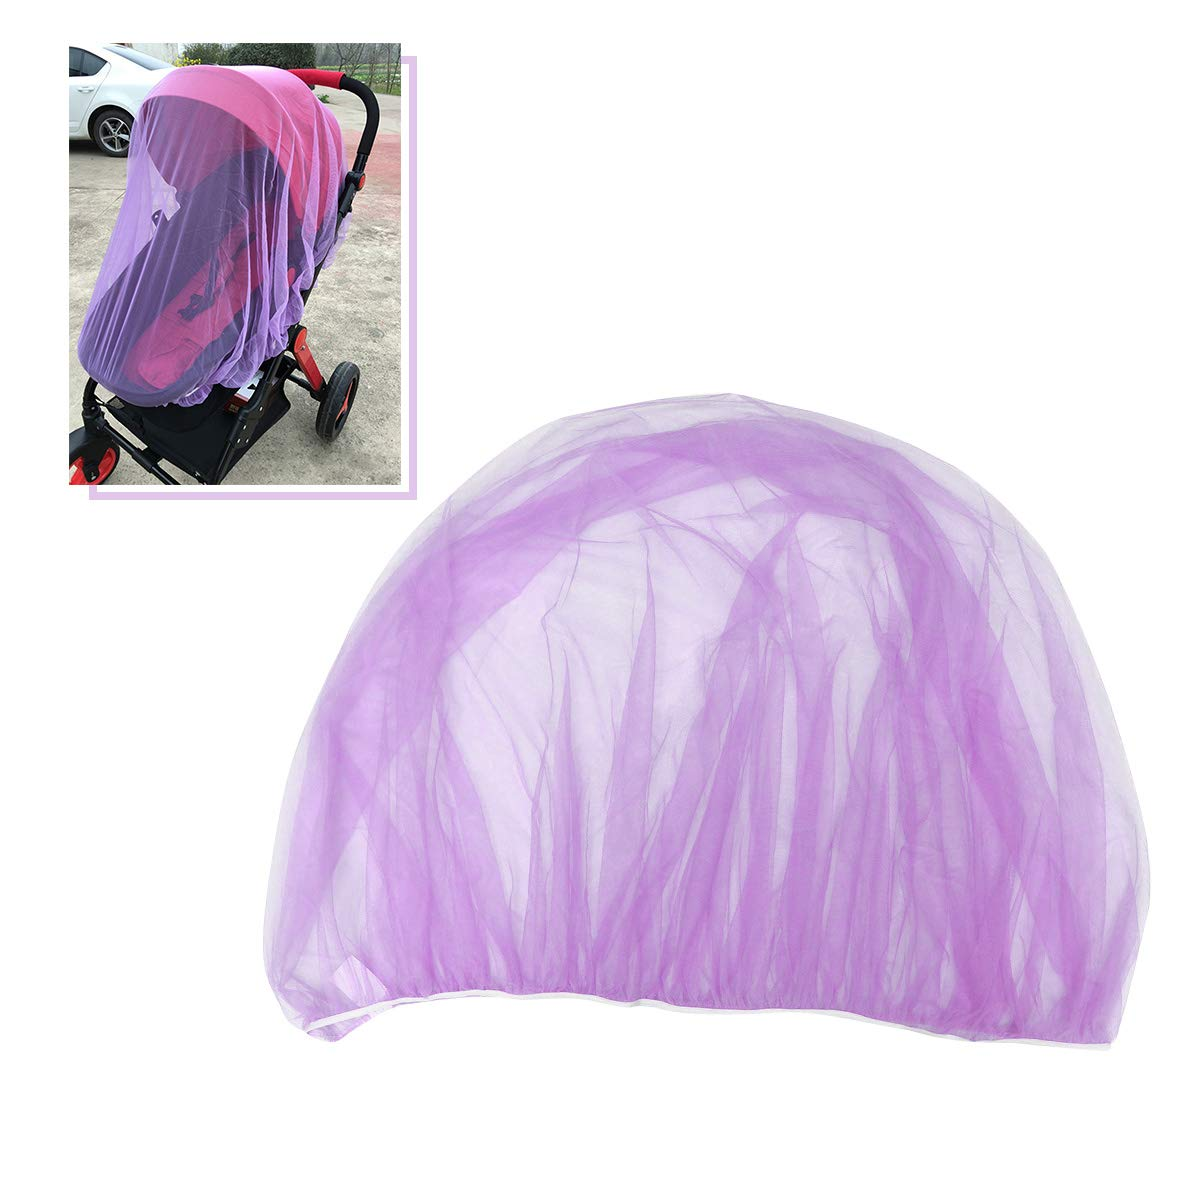 Toyvian Mosquito Net Baby Mesh Insect Bug Cover for Strollers Carriers Car Seats Cradles Black